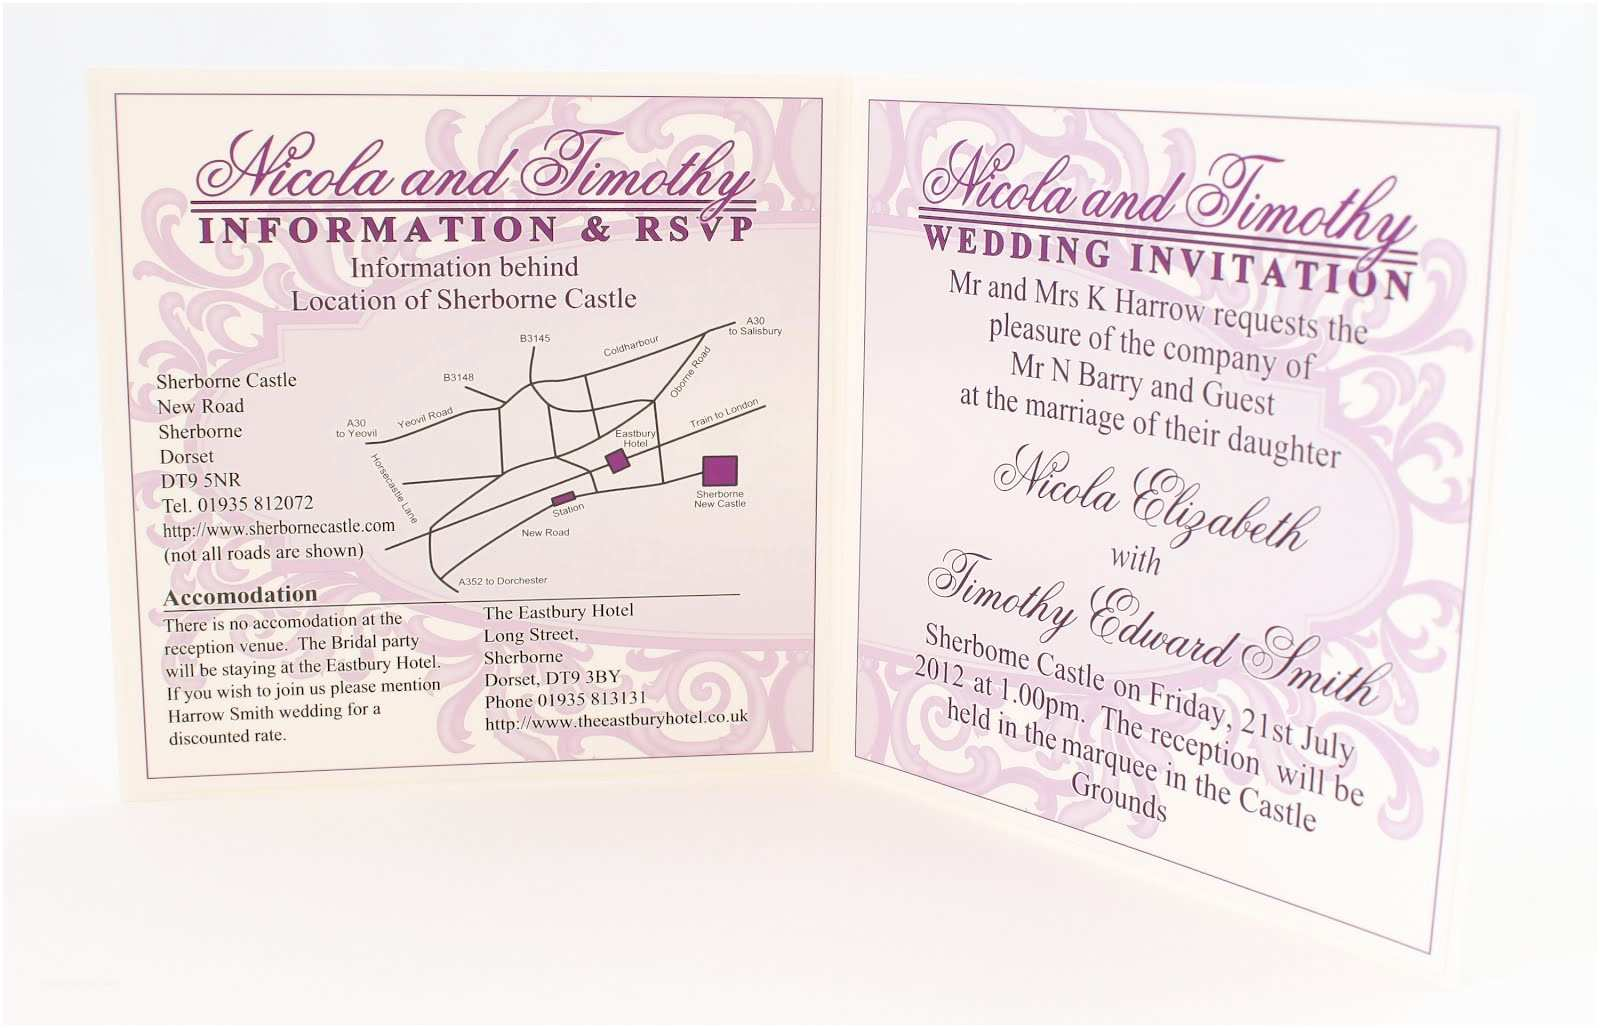 Wedding Invitation Information Card Wedding Invitation Information Card Example Gallery